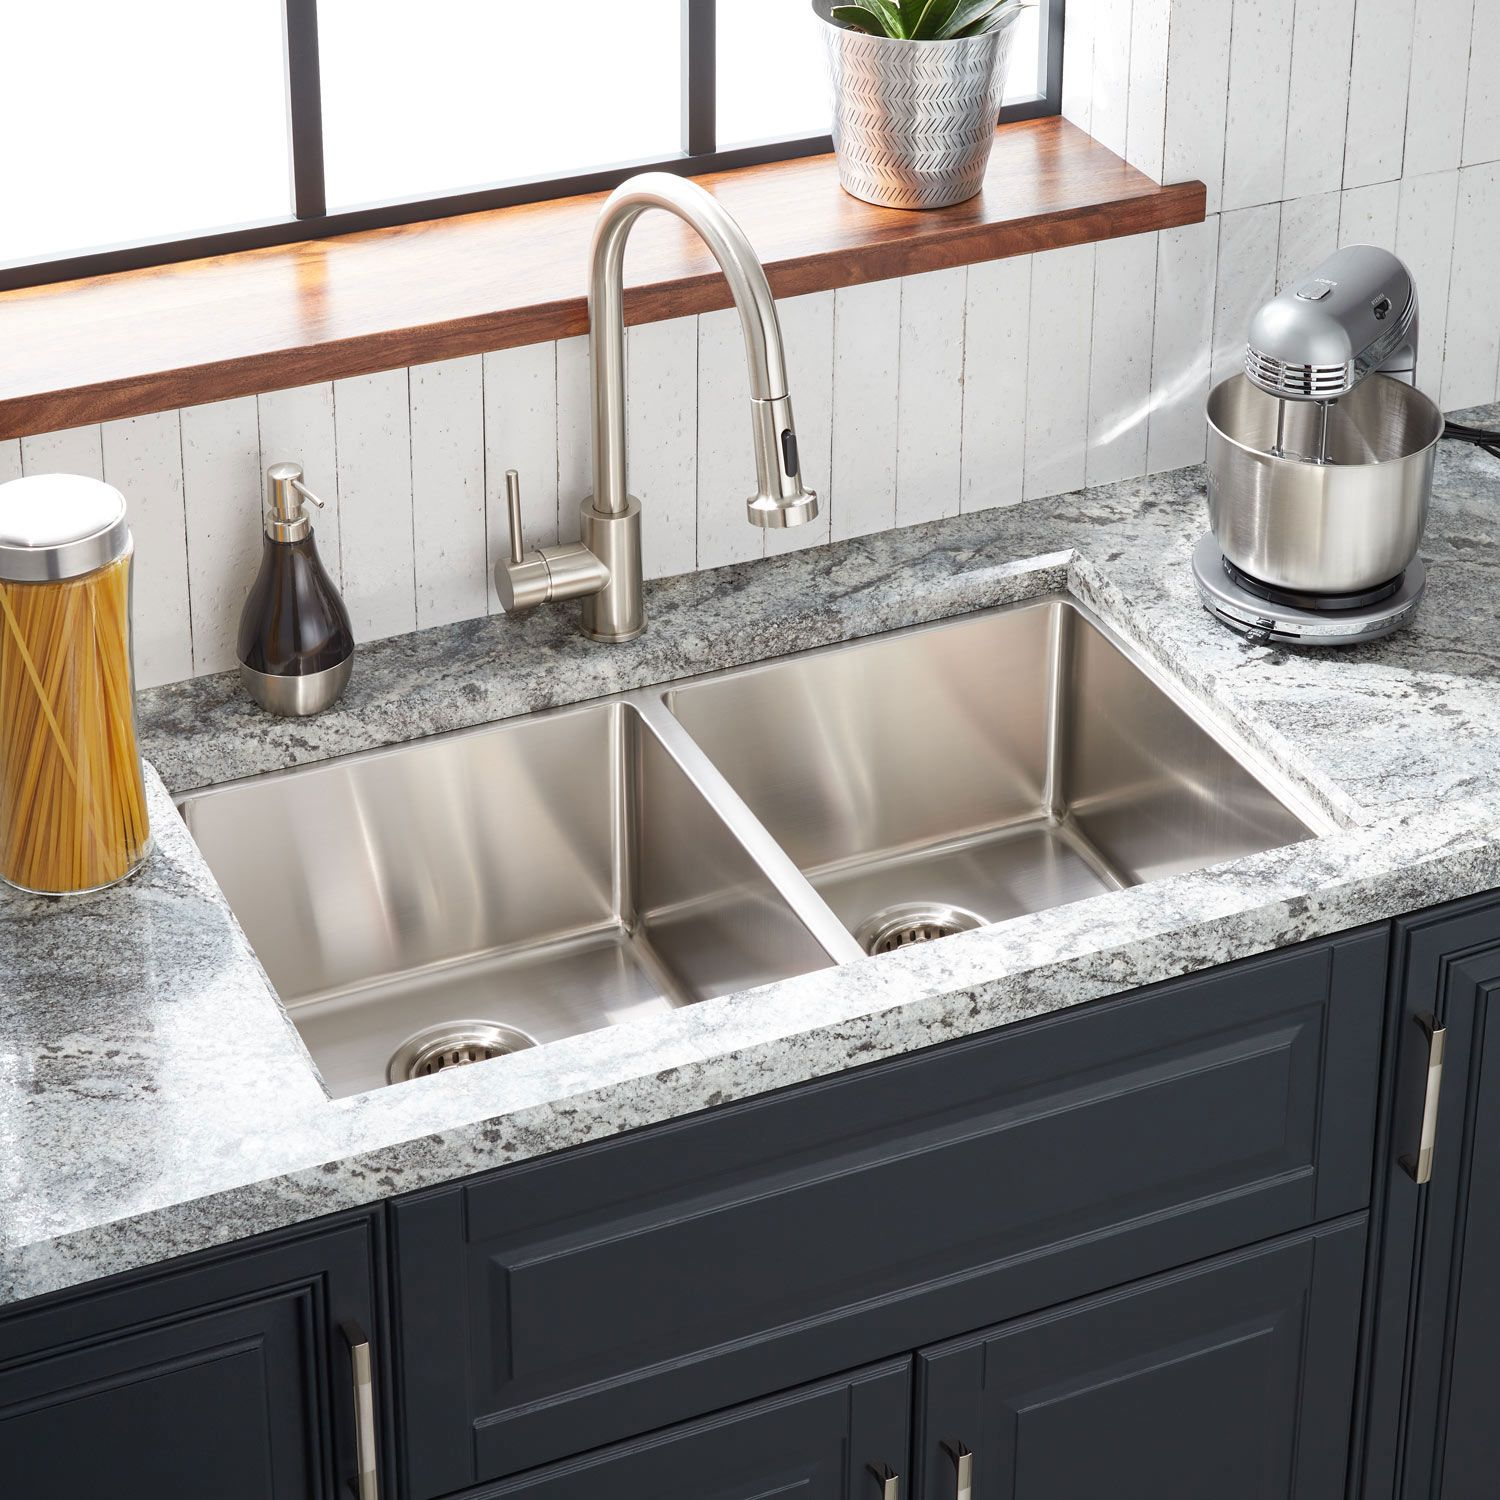 33 Ortega Double Bowl Stainless Steel Undermount Sink In Single